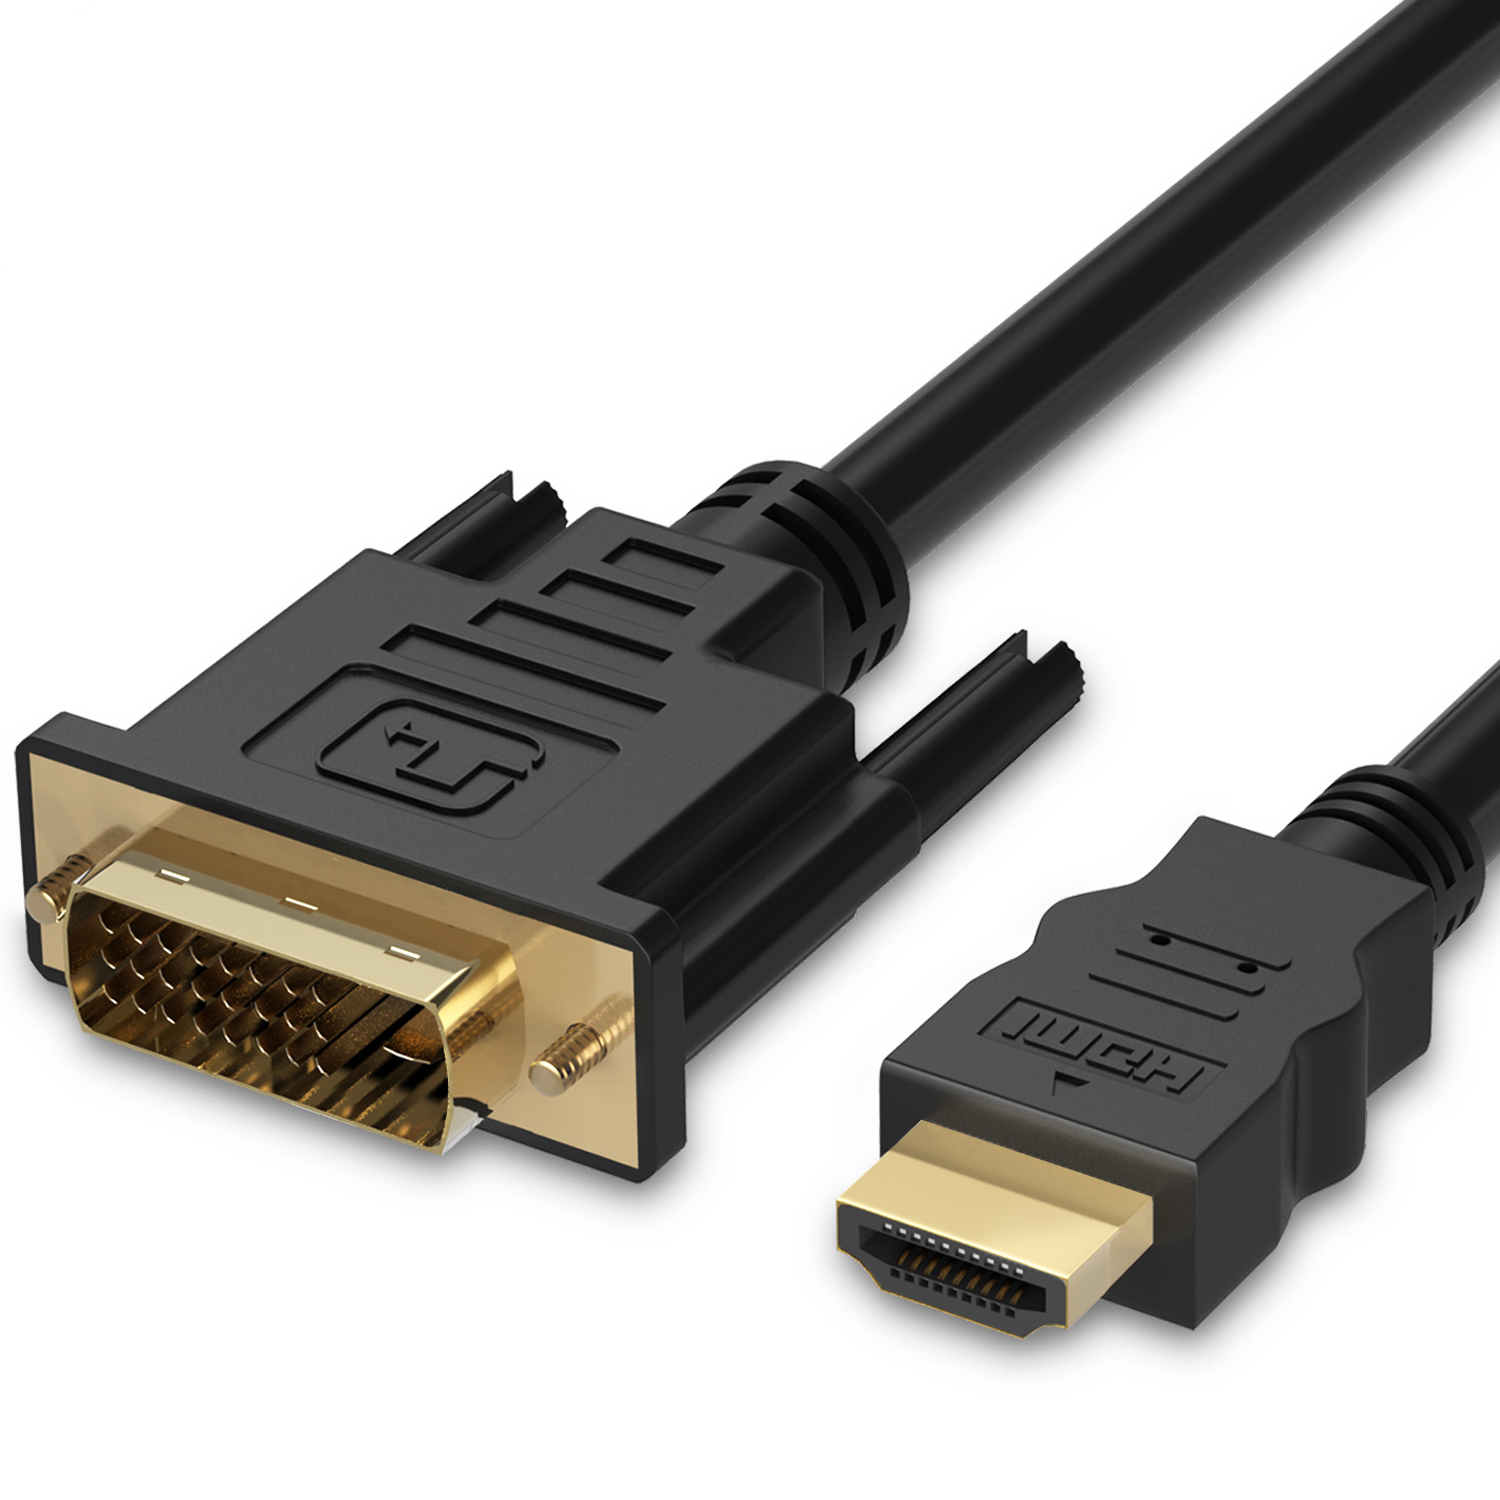 HDMI to DVI Cable (15 FT), Fosmon DVI-D to HDMI Cord Bi-Directional Gold Plated High Speed HDMI (Type A) to DVI for HDTV, Apple TV, Smart TV, PS3/PS4, Xbox One X/One S/360, Wii U